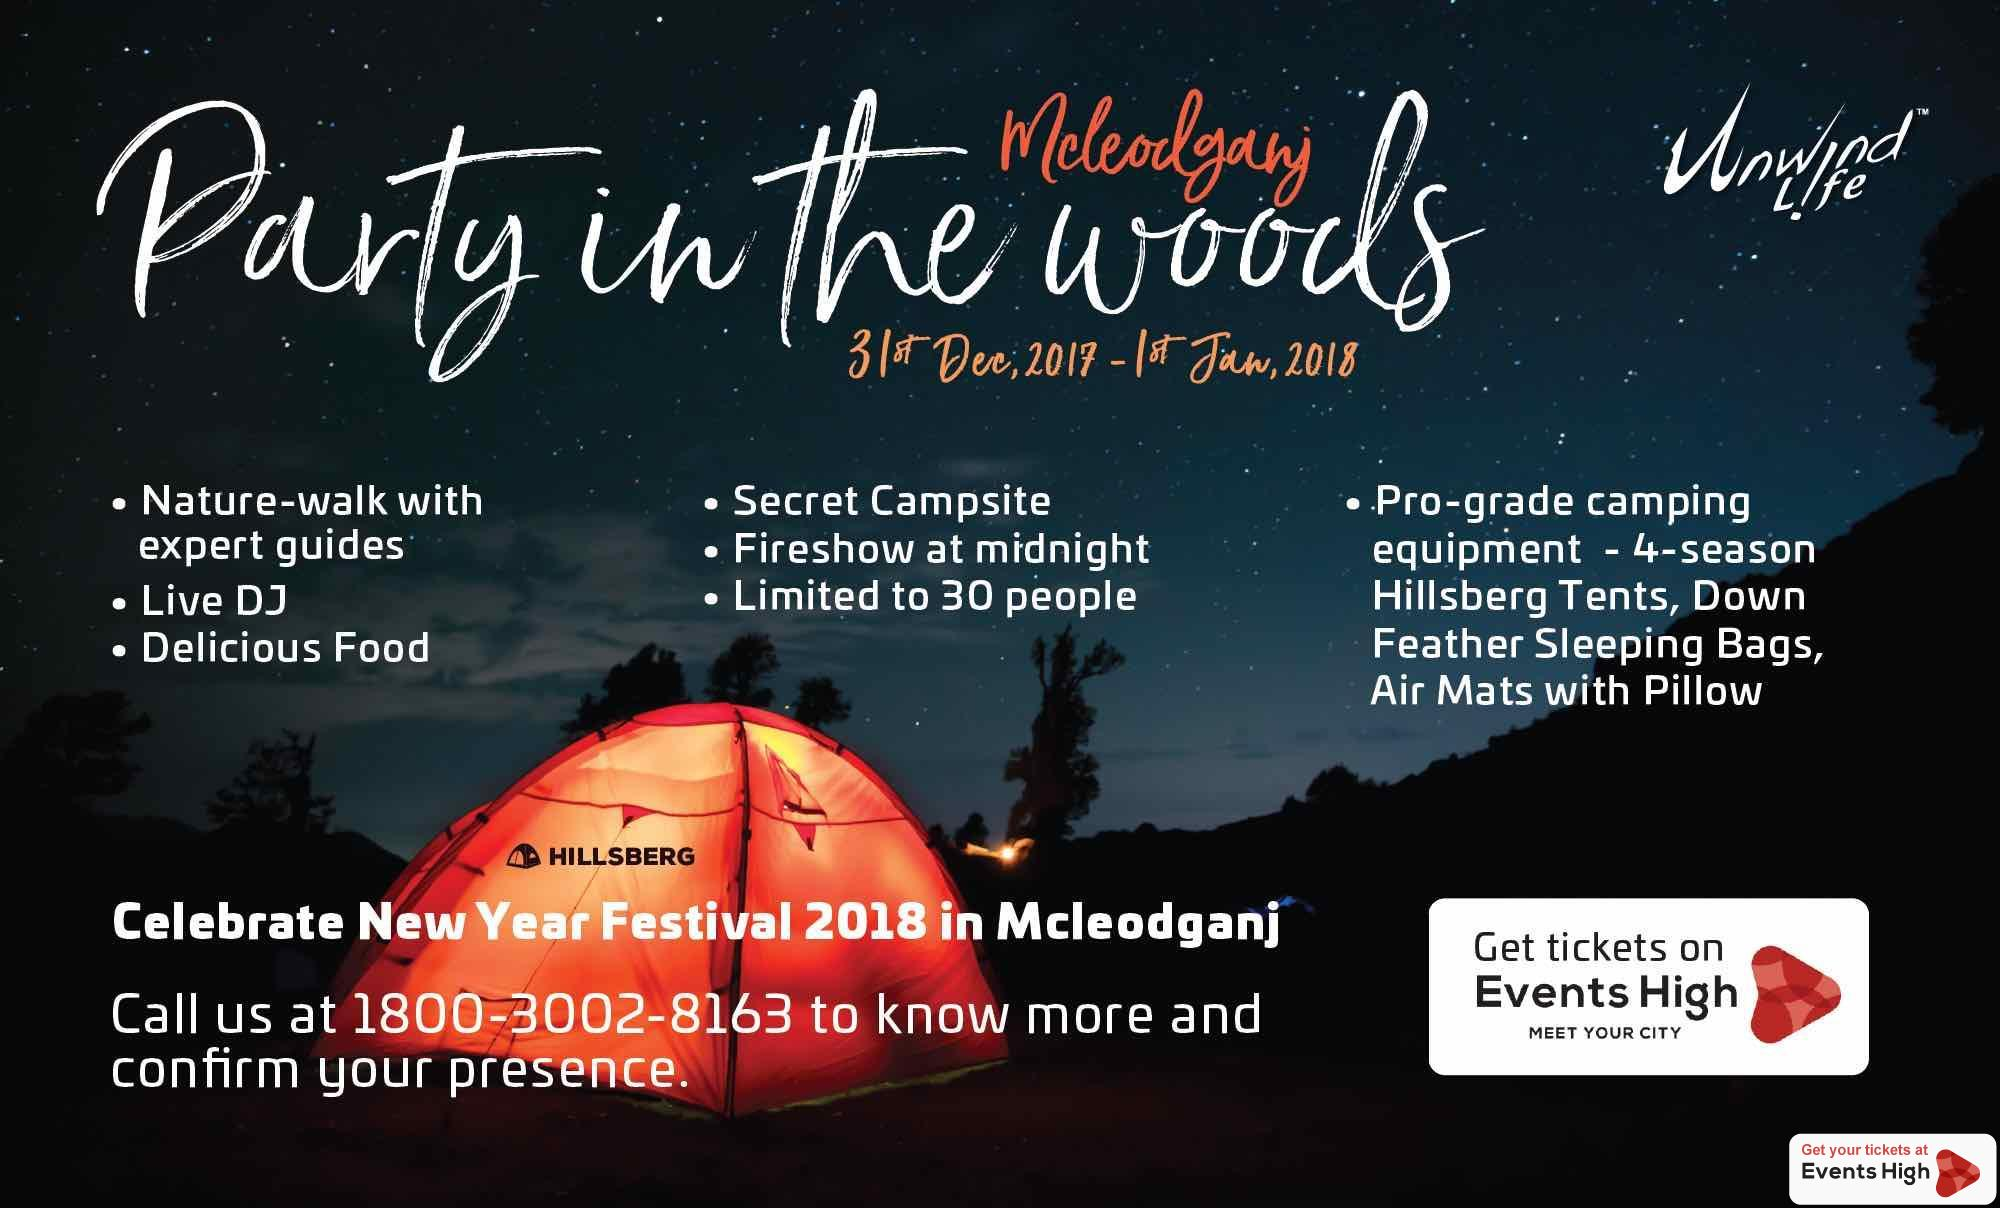 Mcleodganj 2018- Party in the woods!